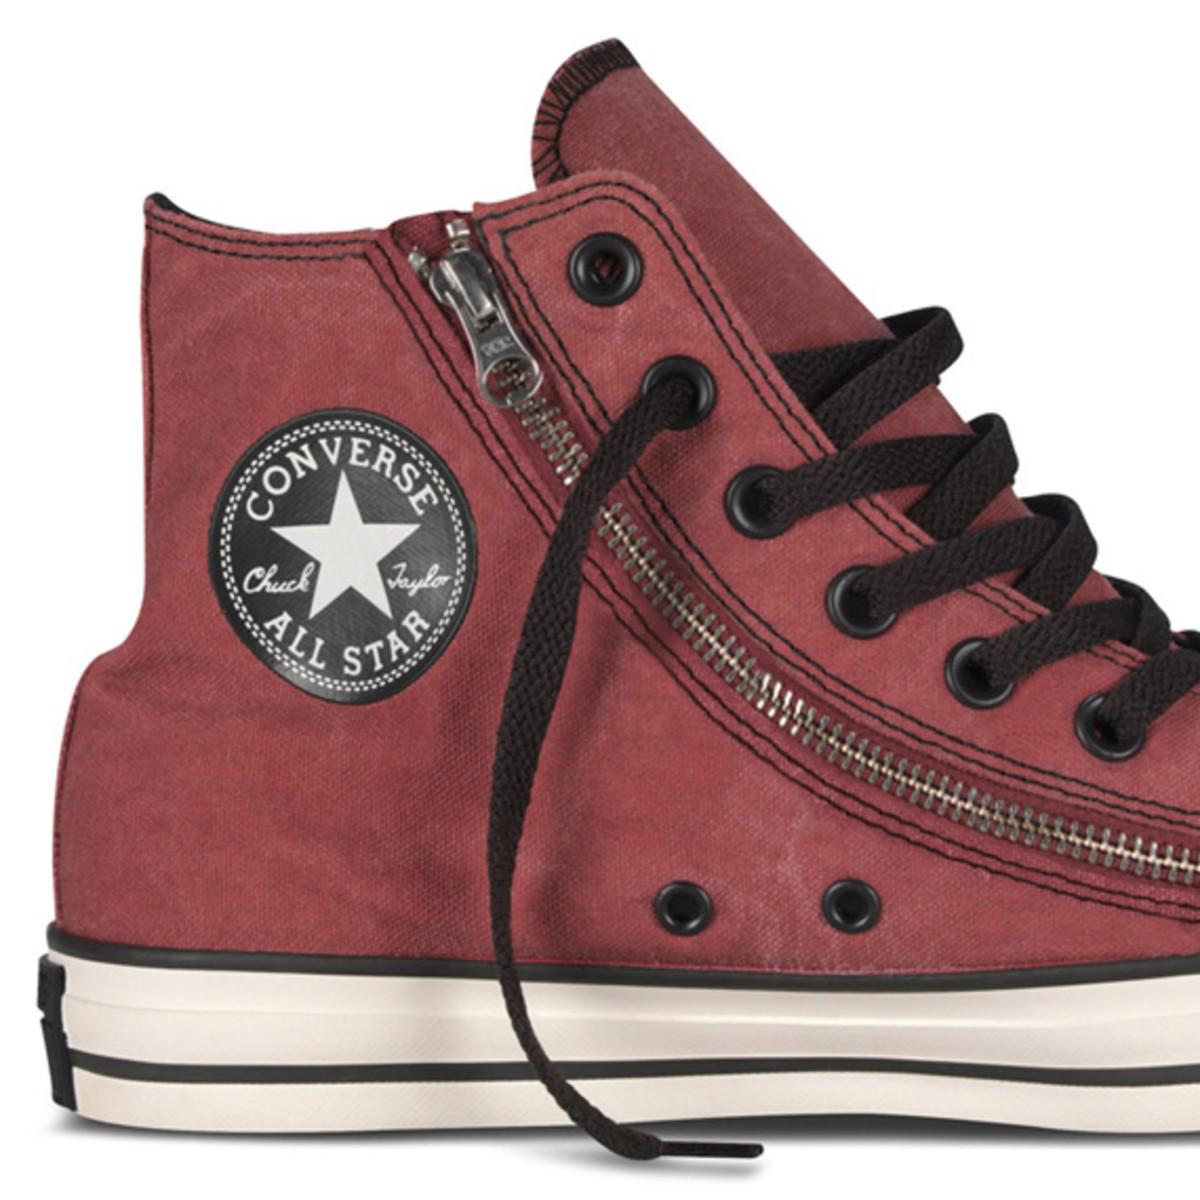 CONVERSE Chuck Taylor All Star Double Zip - Fall 2013 Collection - 6